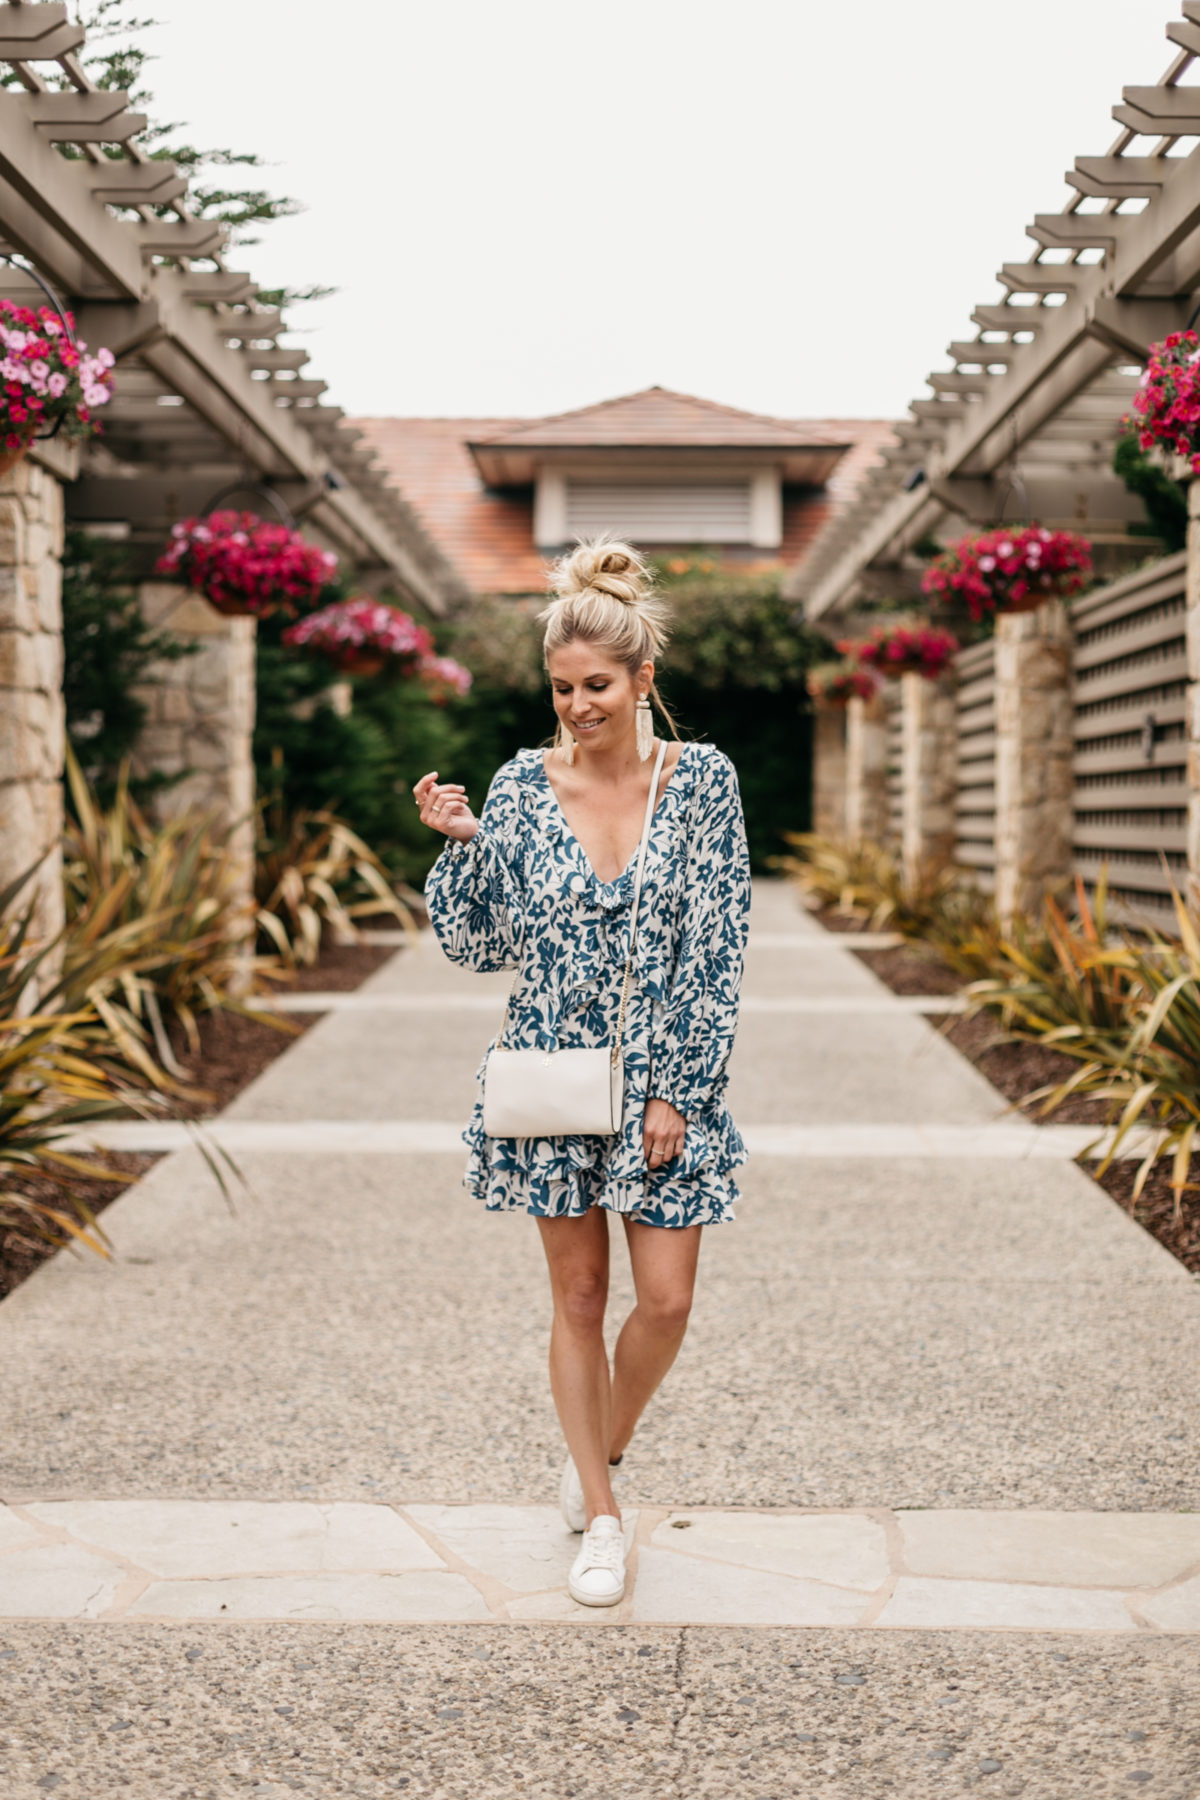 Brooke's outfit: Blue Long Sleeve Ruffle Minidress // White Earrings // White Crossbody // White Walking Tennis Shoes